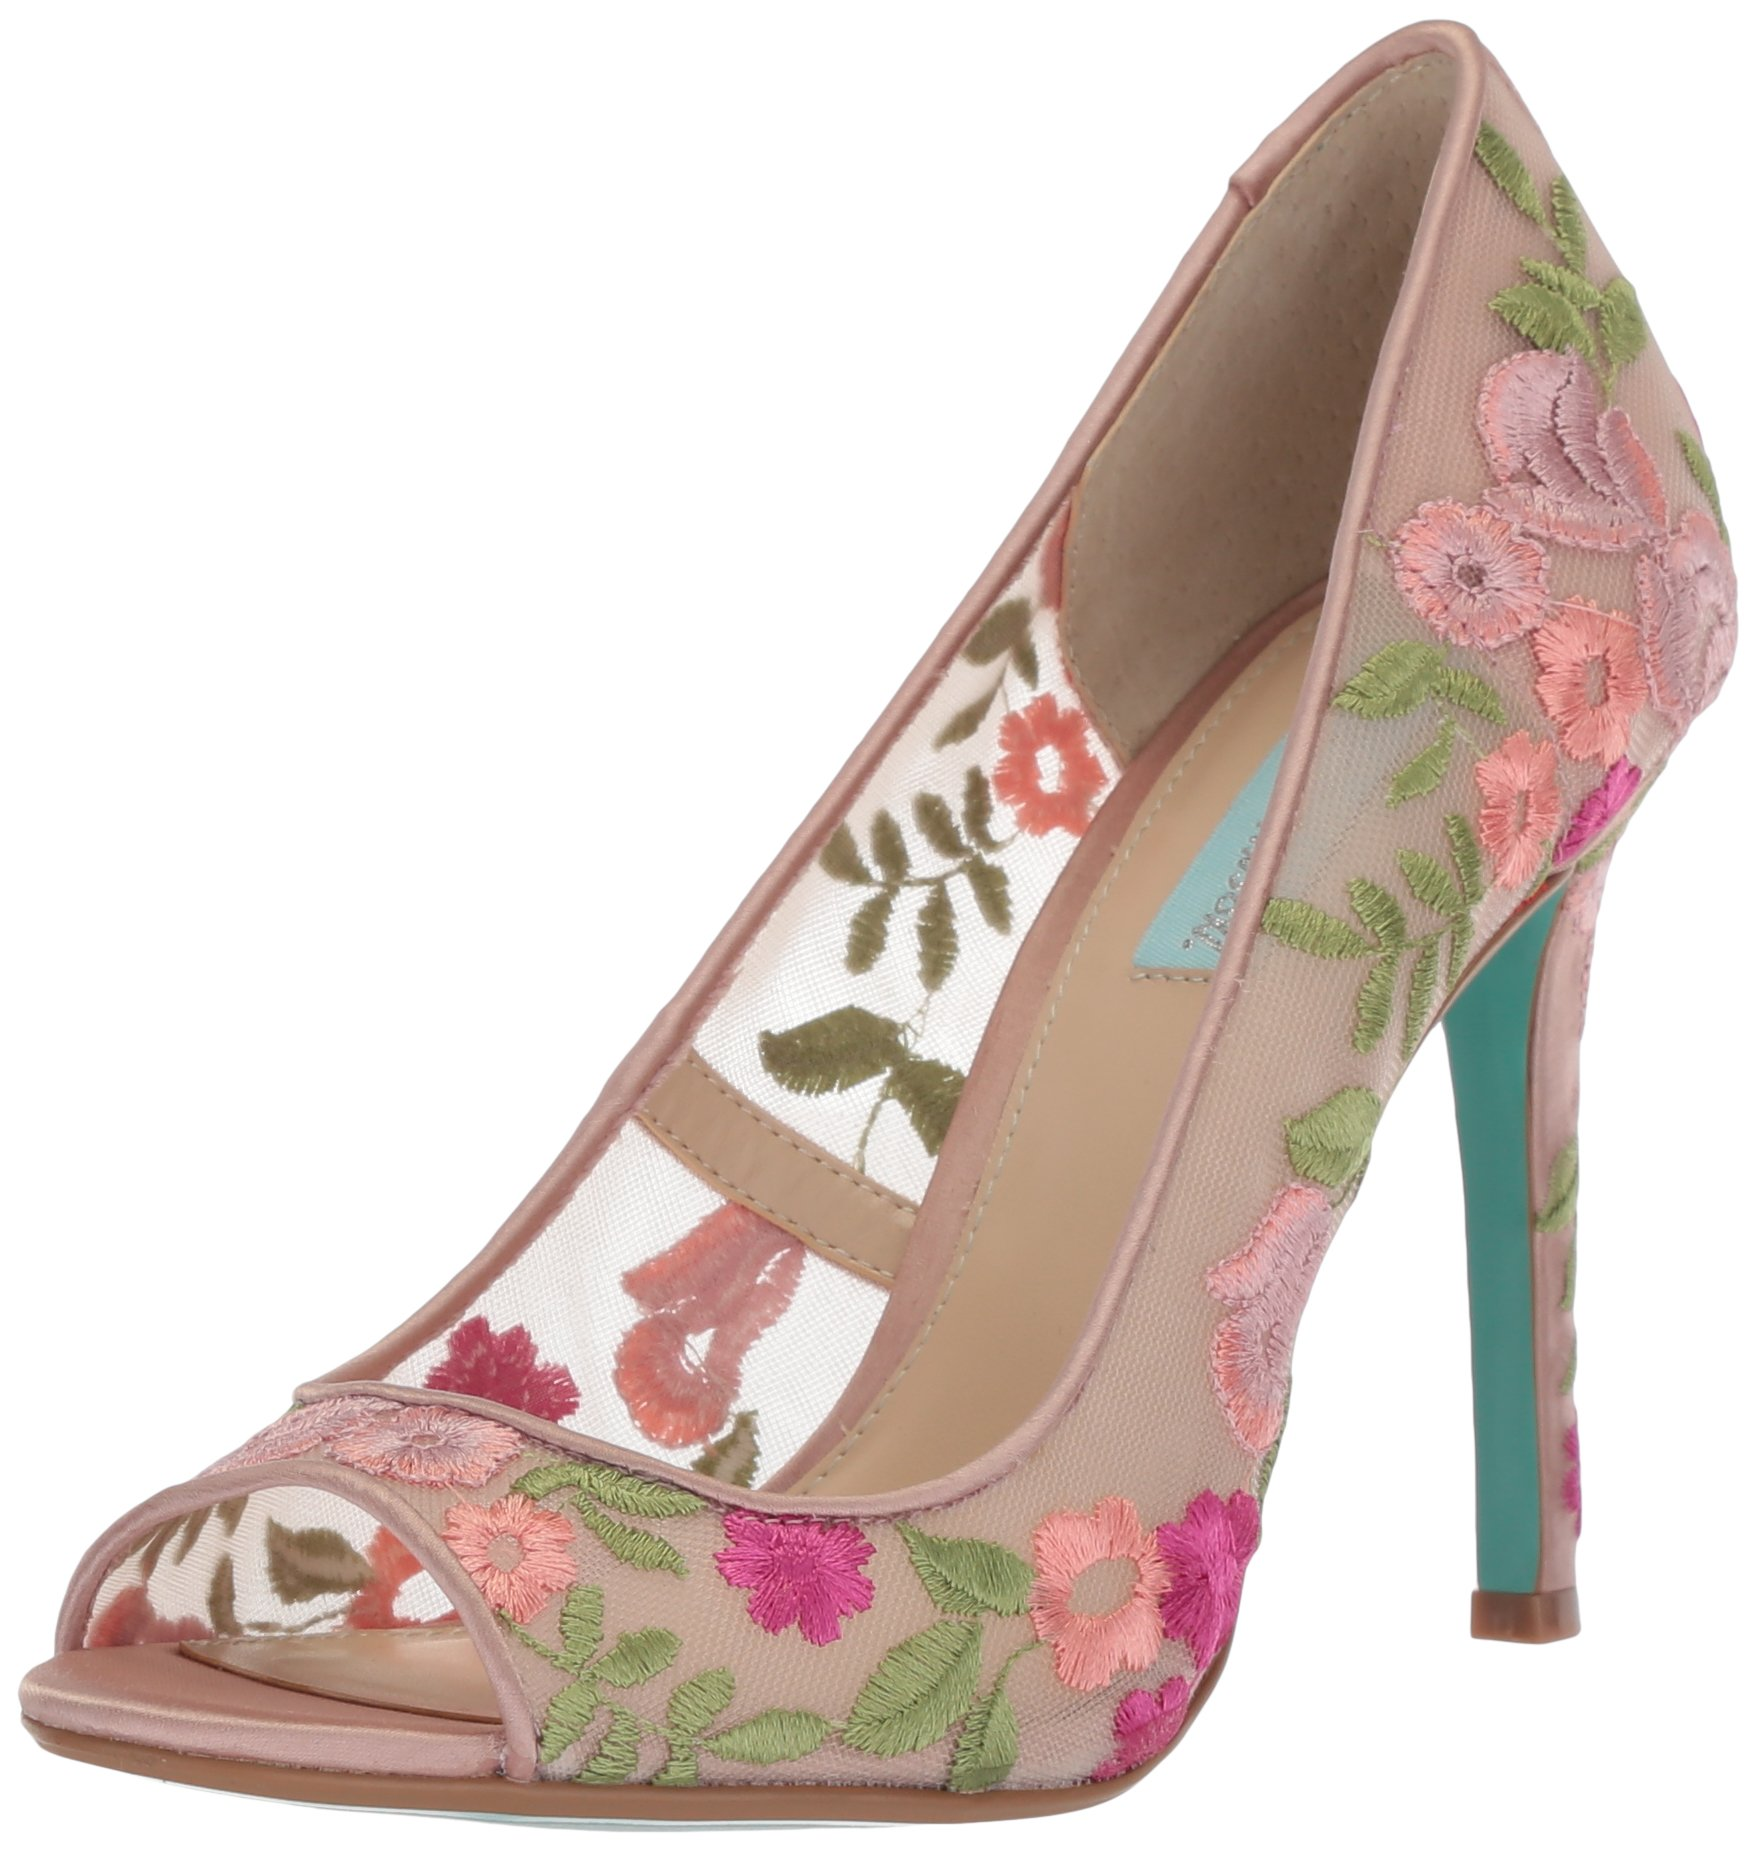 Blue by Betsey Johnson Women's SB-Adley Heeled Sandal, Pink/Multi, 8.5 M US